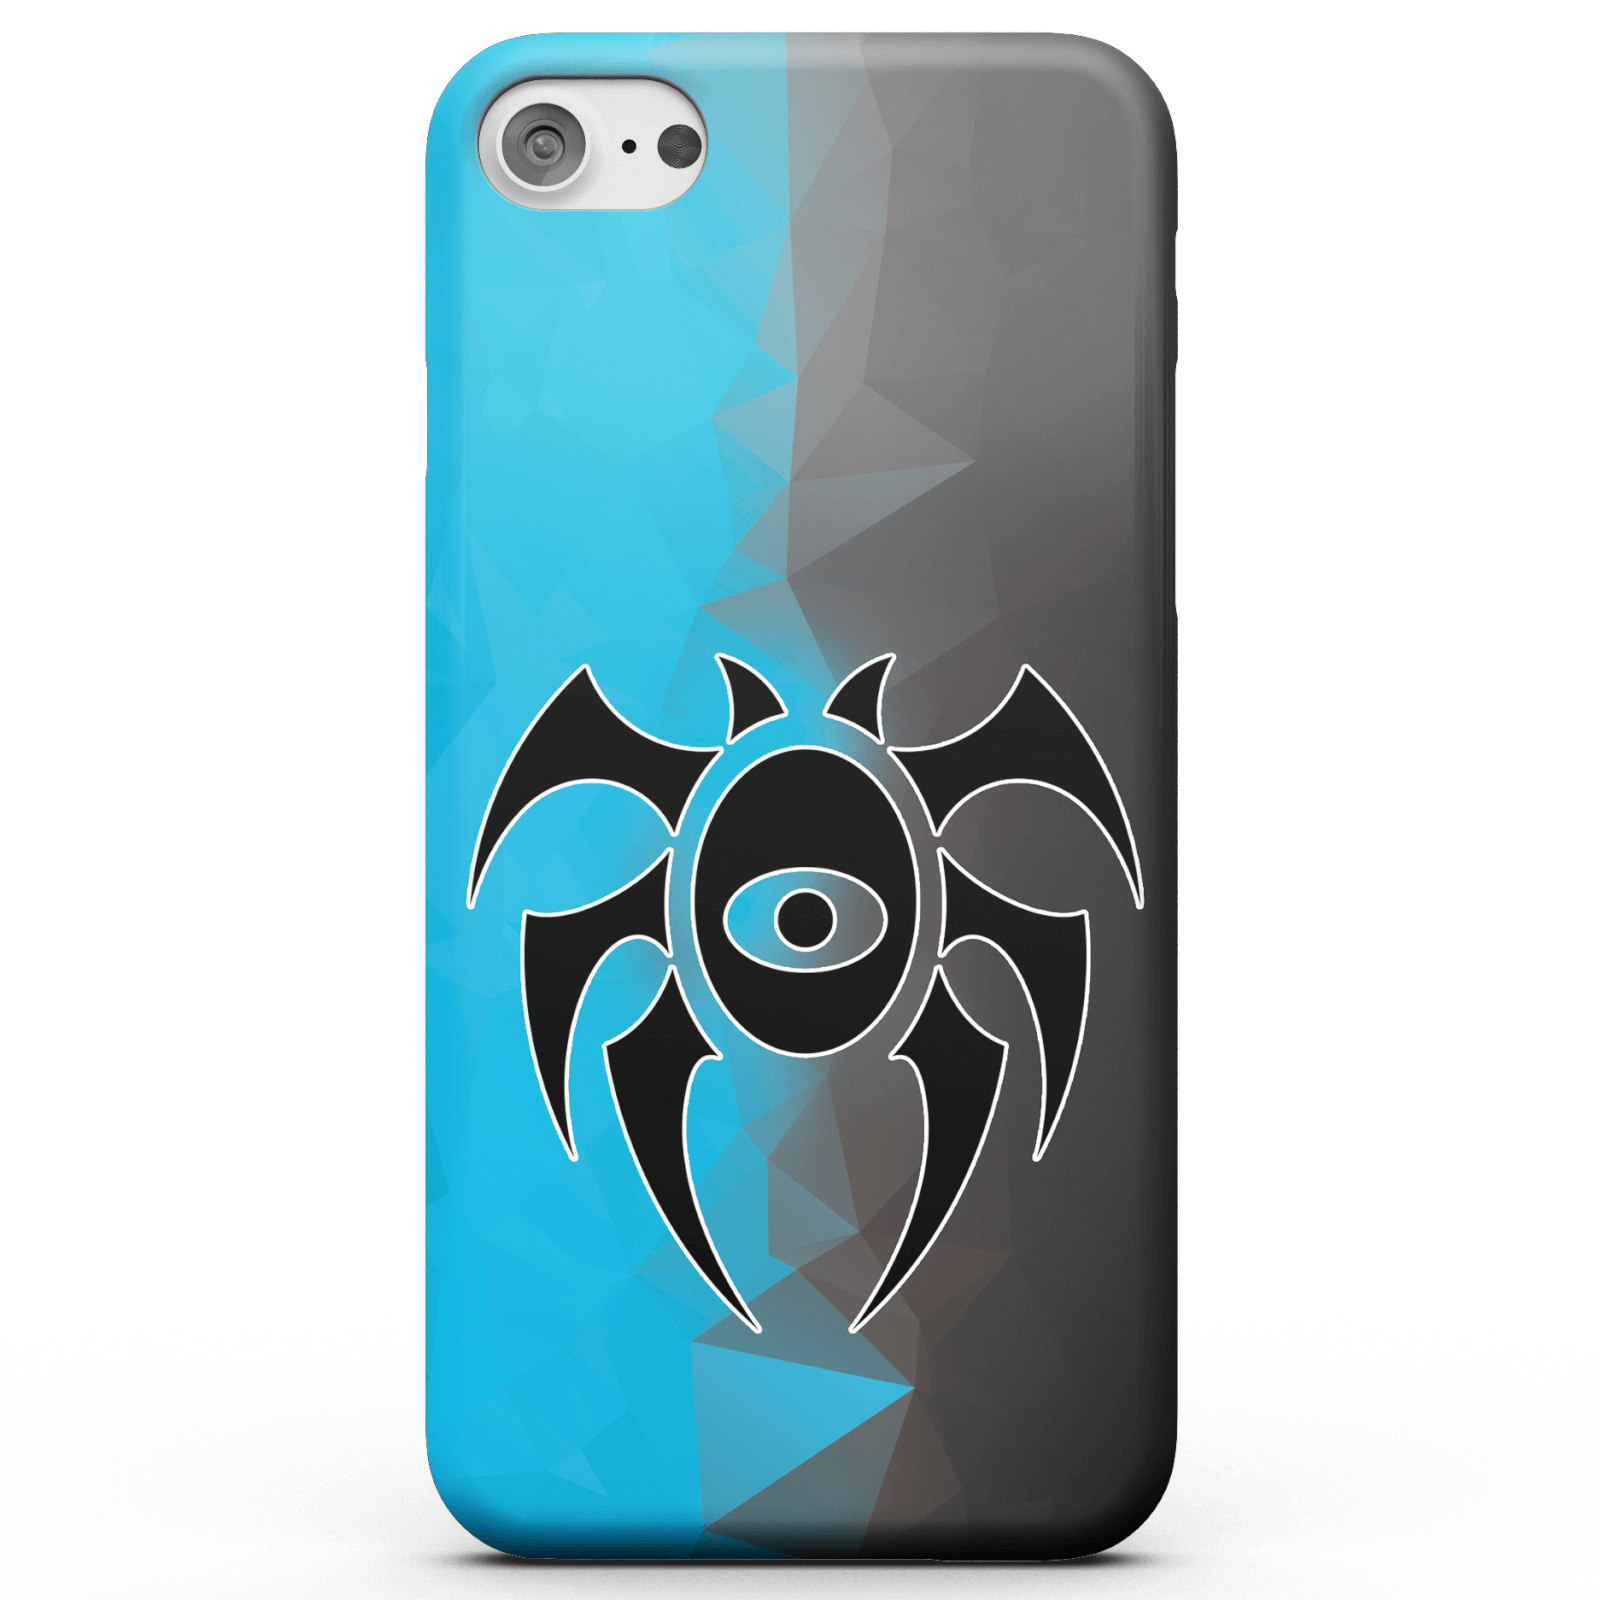 Funda Móvil Magic The Gathering Dimir para iPhone y Android - iPhone 5C - Carcasa doble capa - Mate de Magic The Gathering